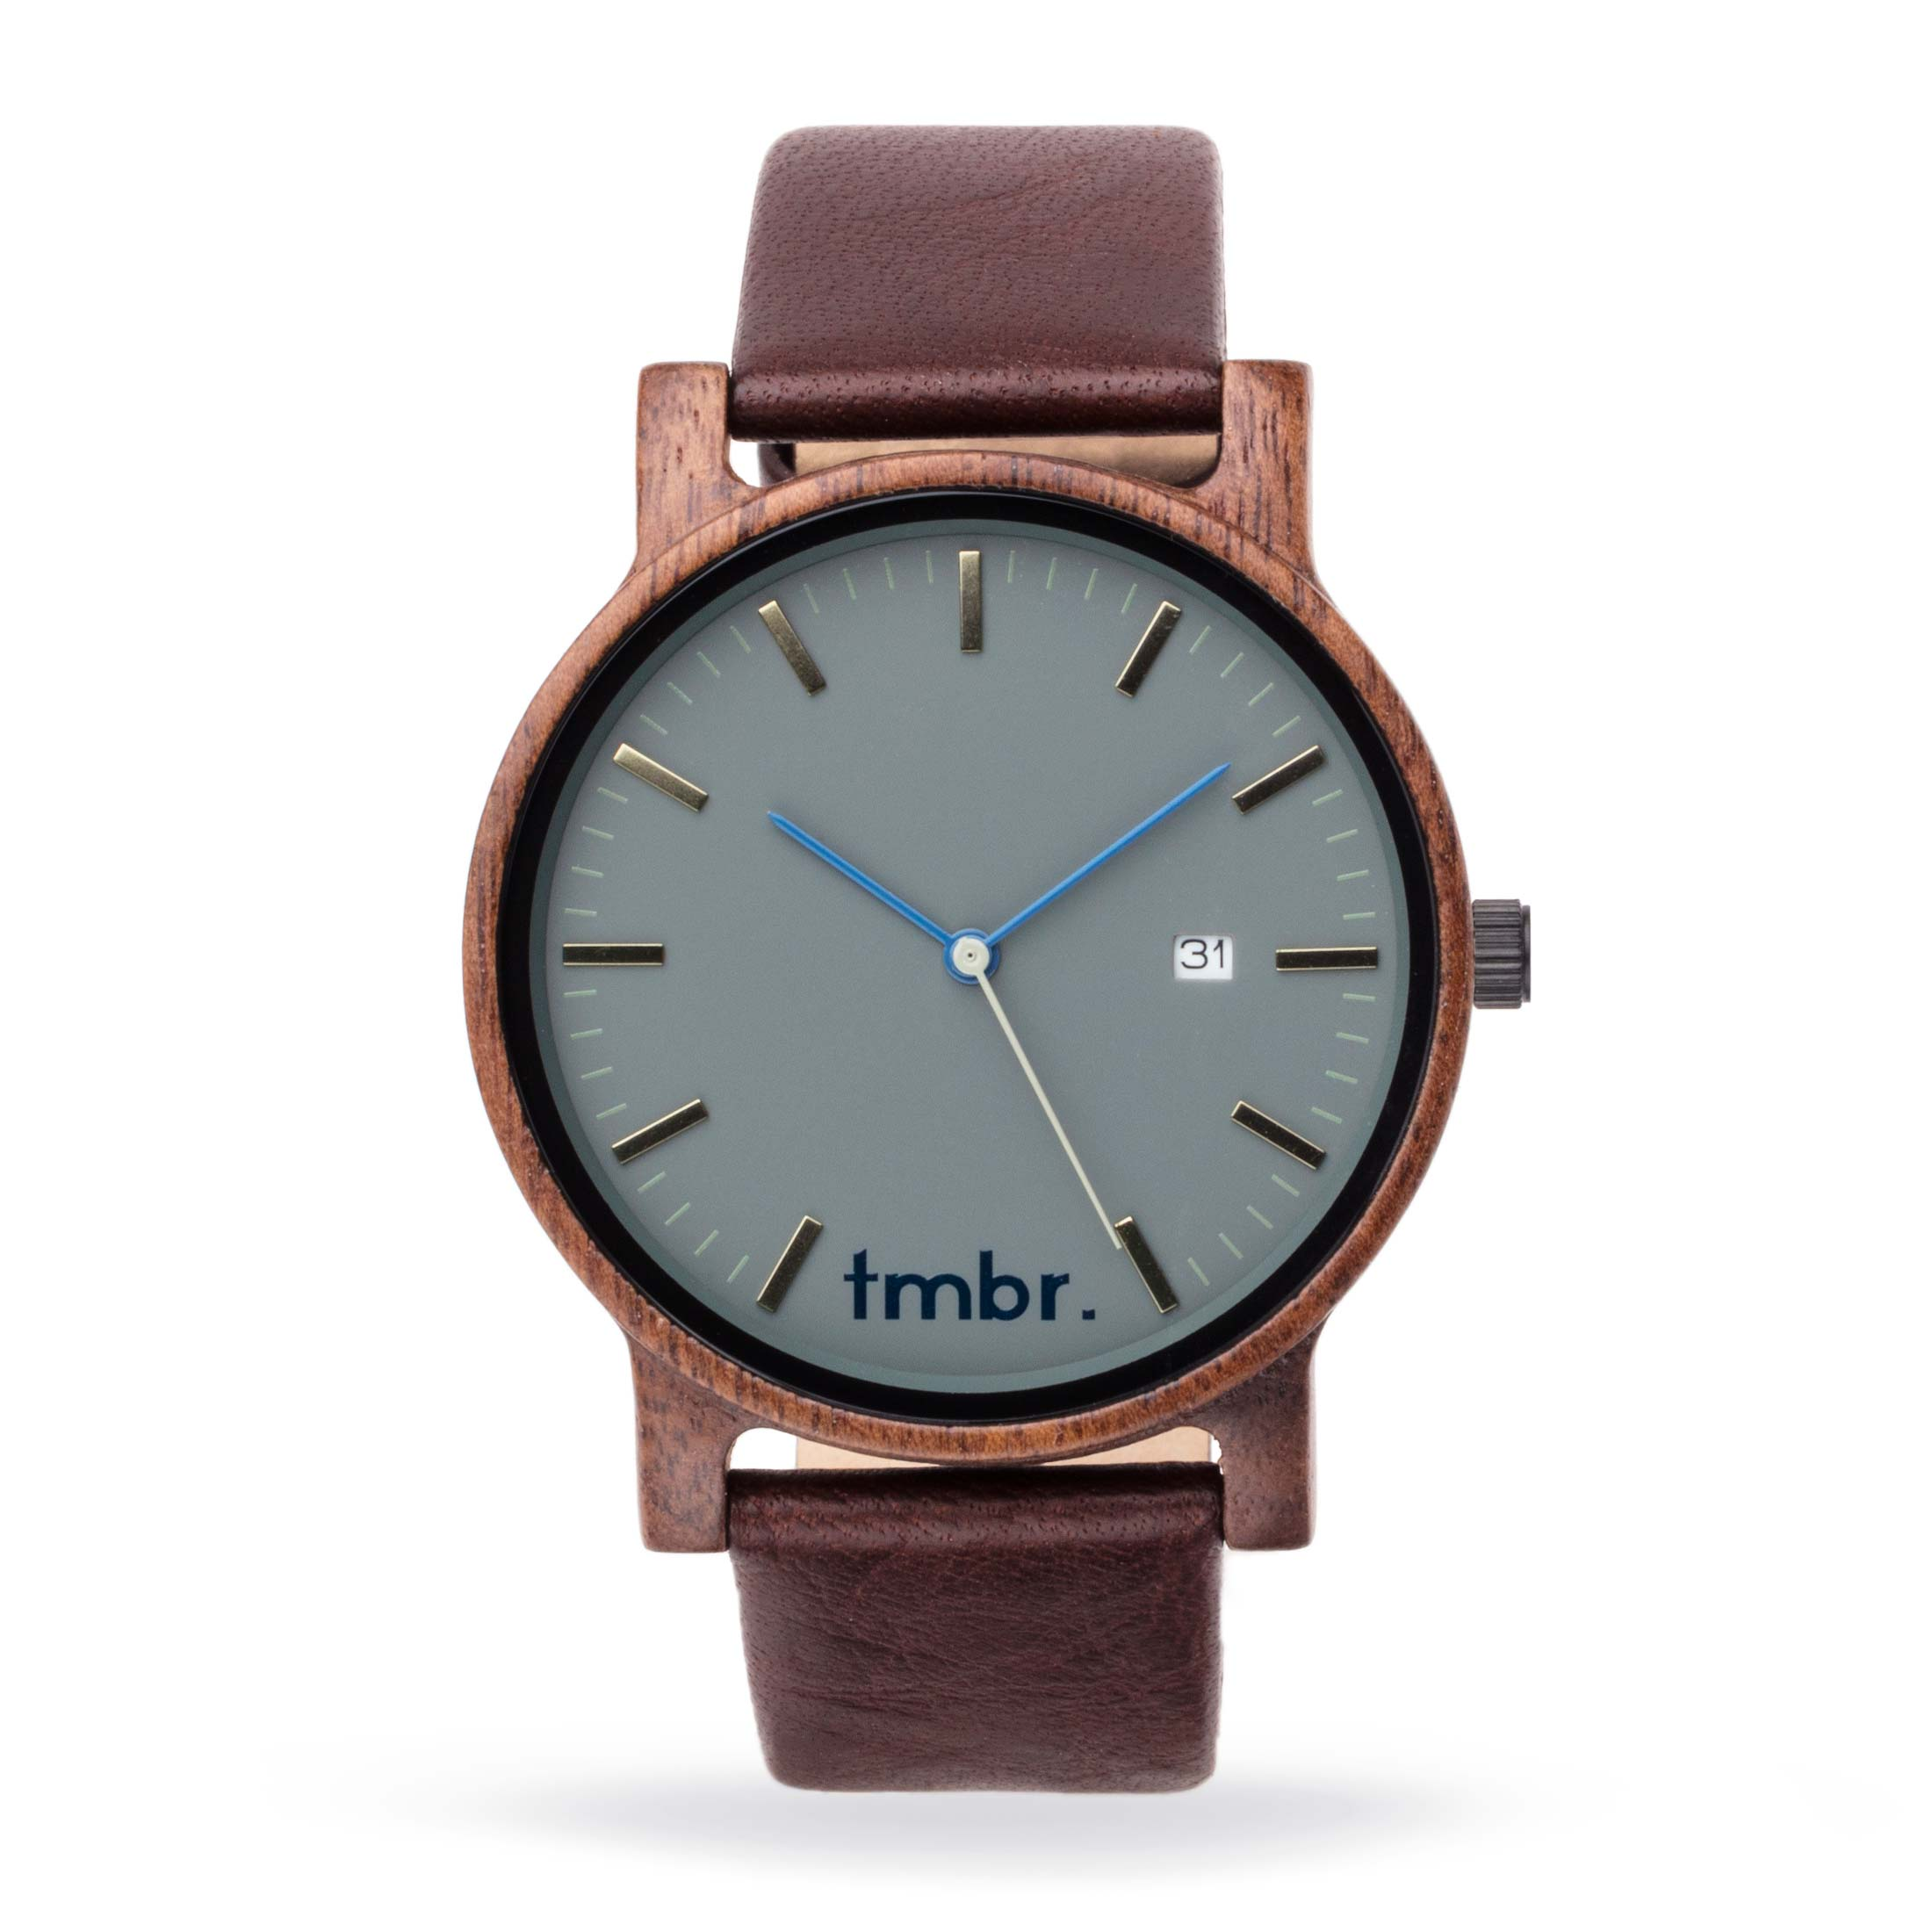 Tmbr Journeyman Wood Watch - Granite Gray